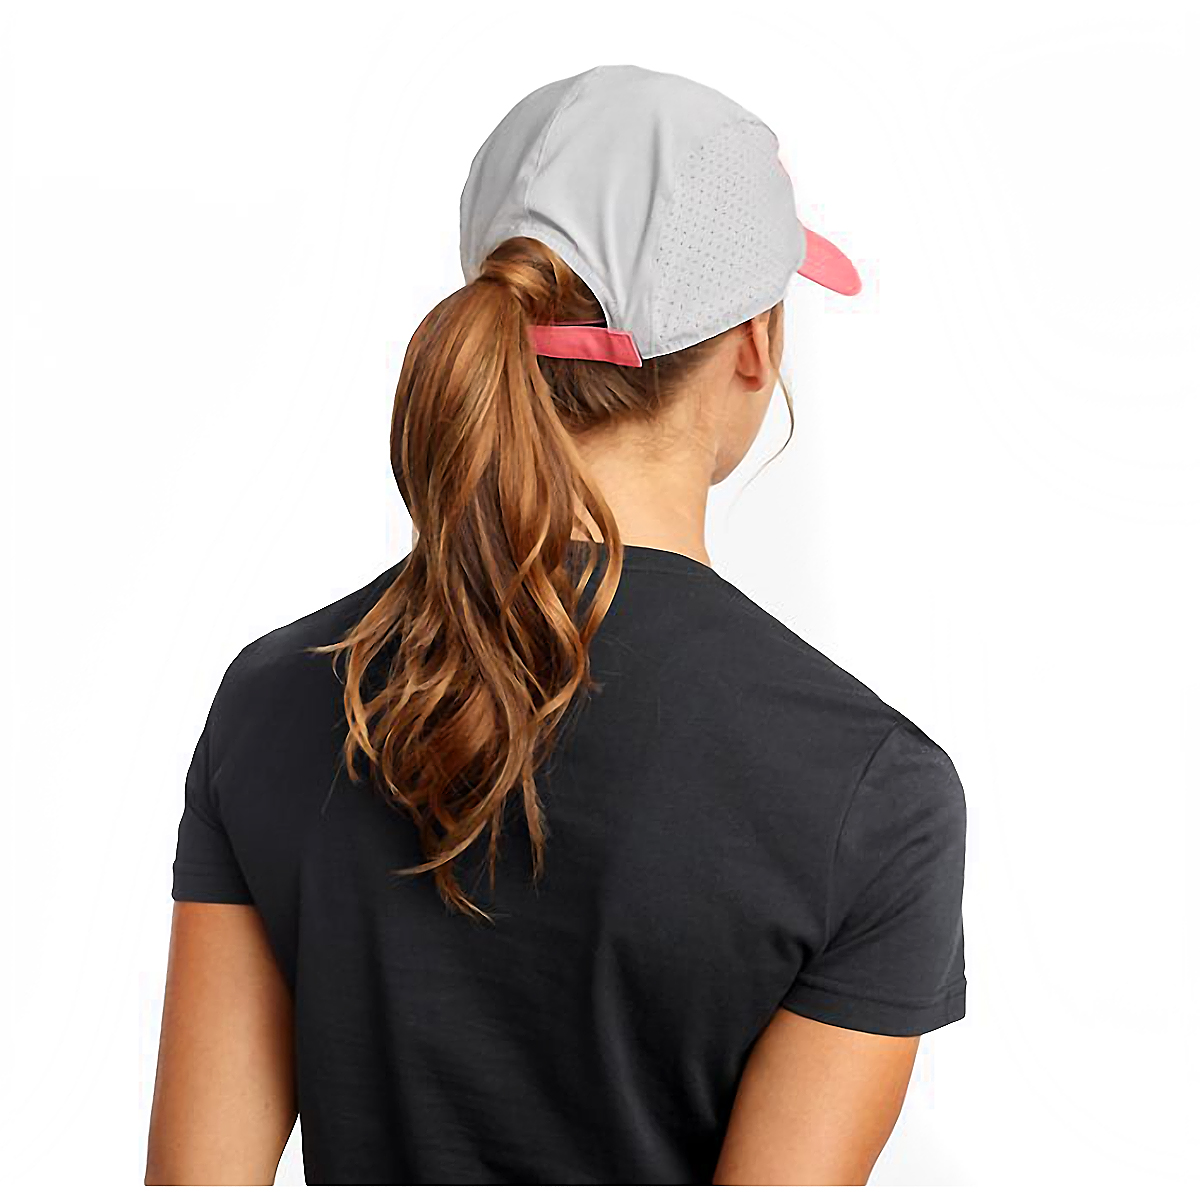 Saucony Outpace Hat - Color: Calypso Coral, Calypso Coral, large, image 2